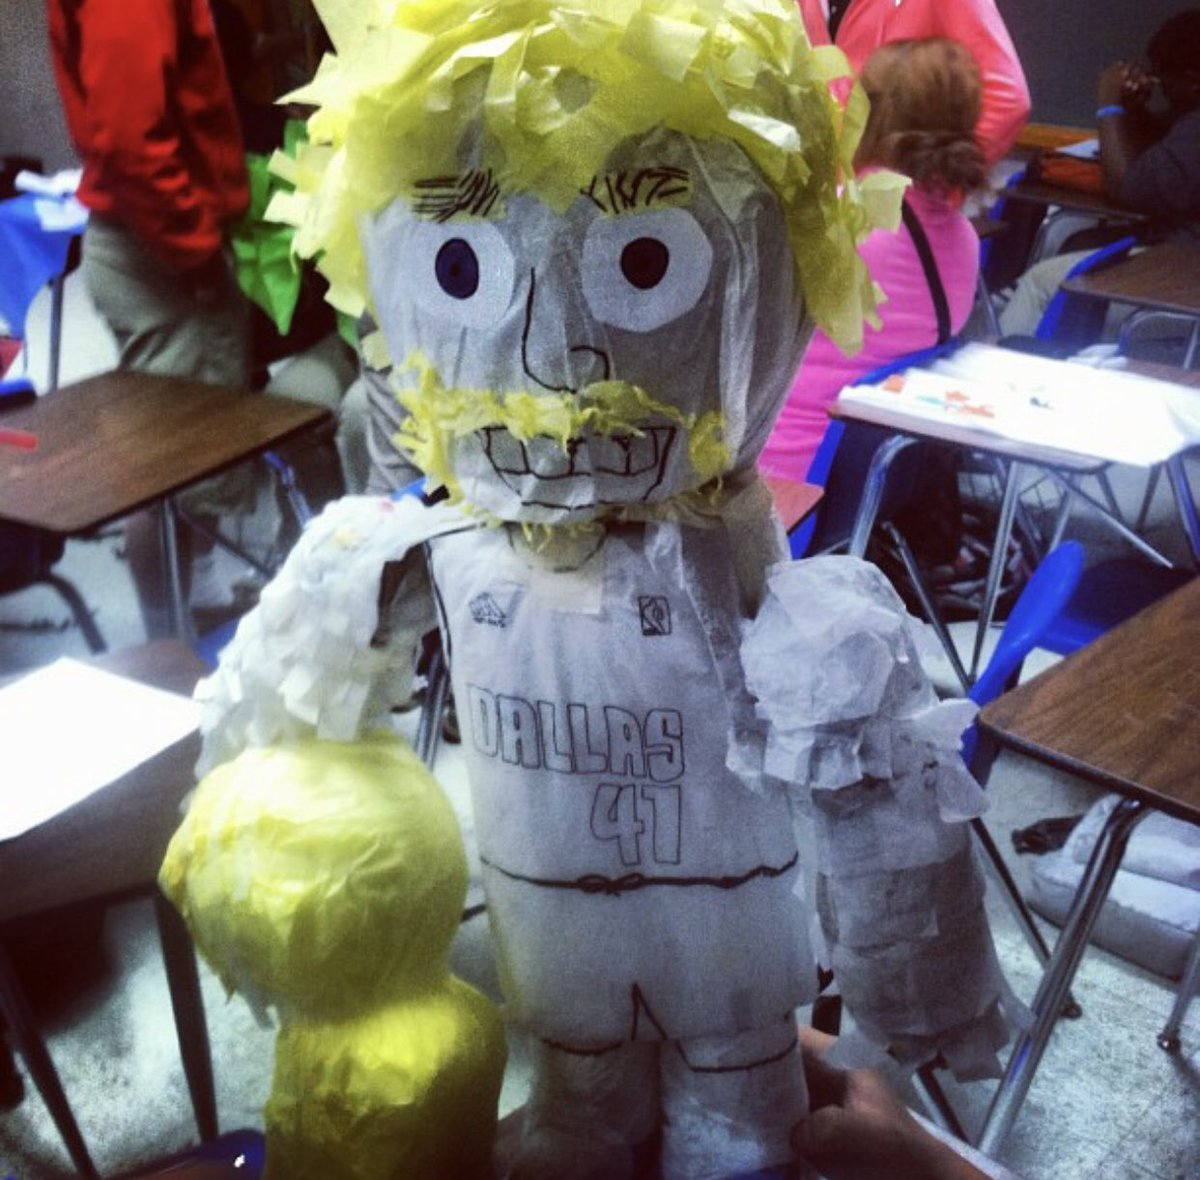 Totally forgot about this from my senior year in high school 14'. For my Spanish class project I made a #DirkNowitzki piñata